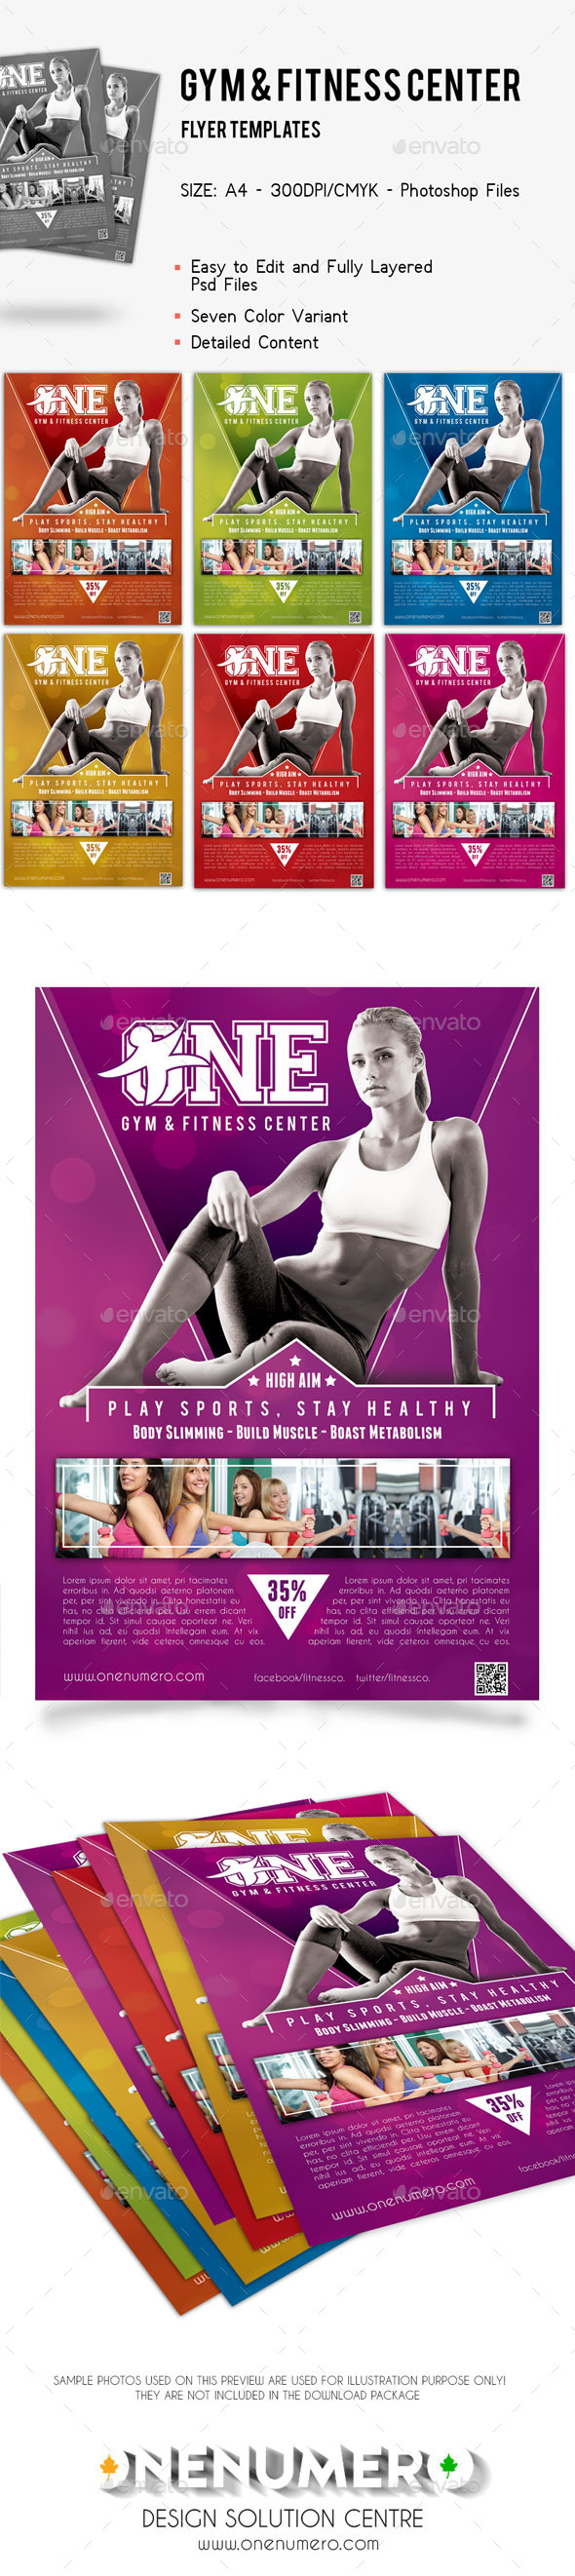 Gym Fitness Center Flyer Template - Sports Events